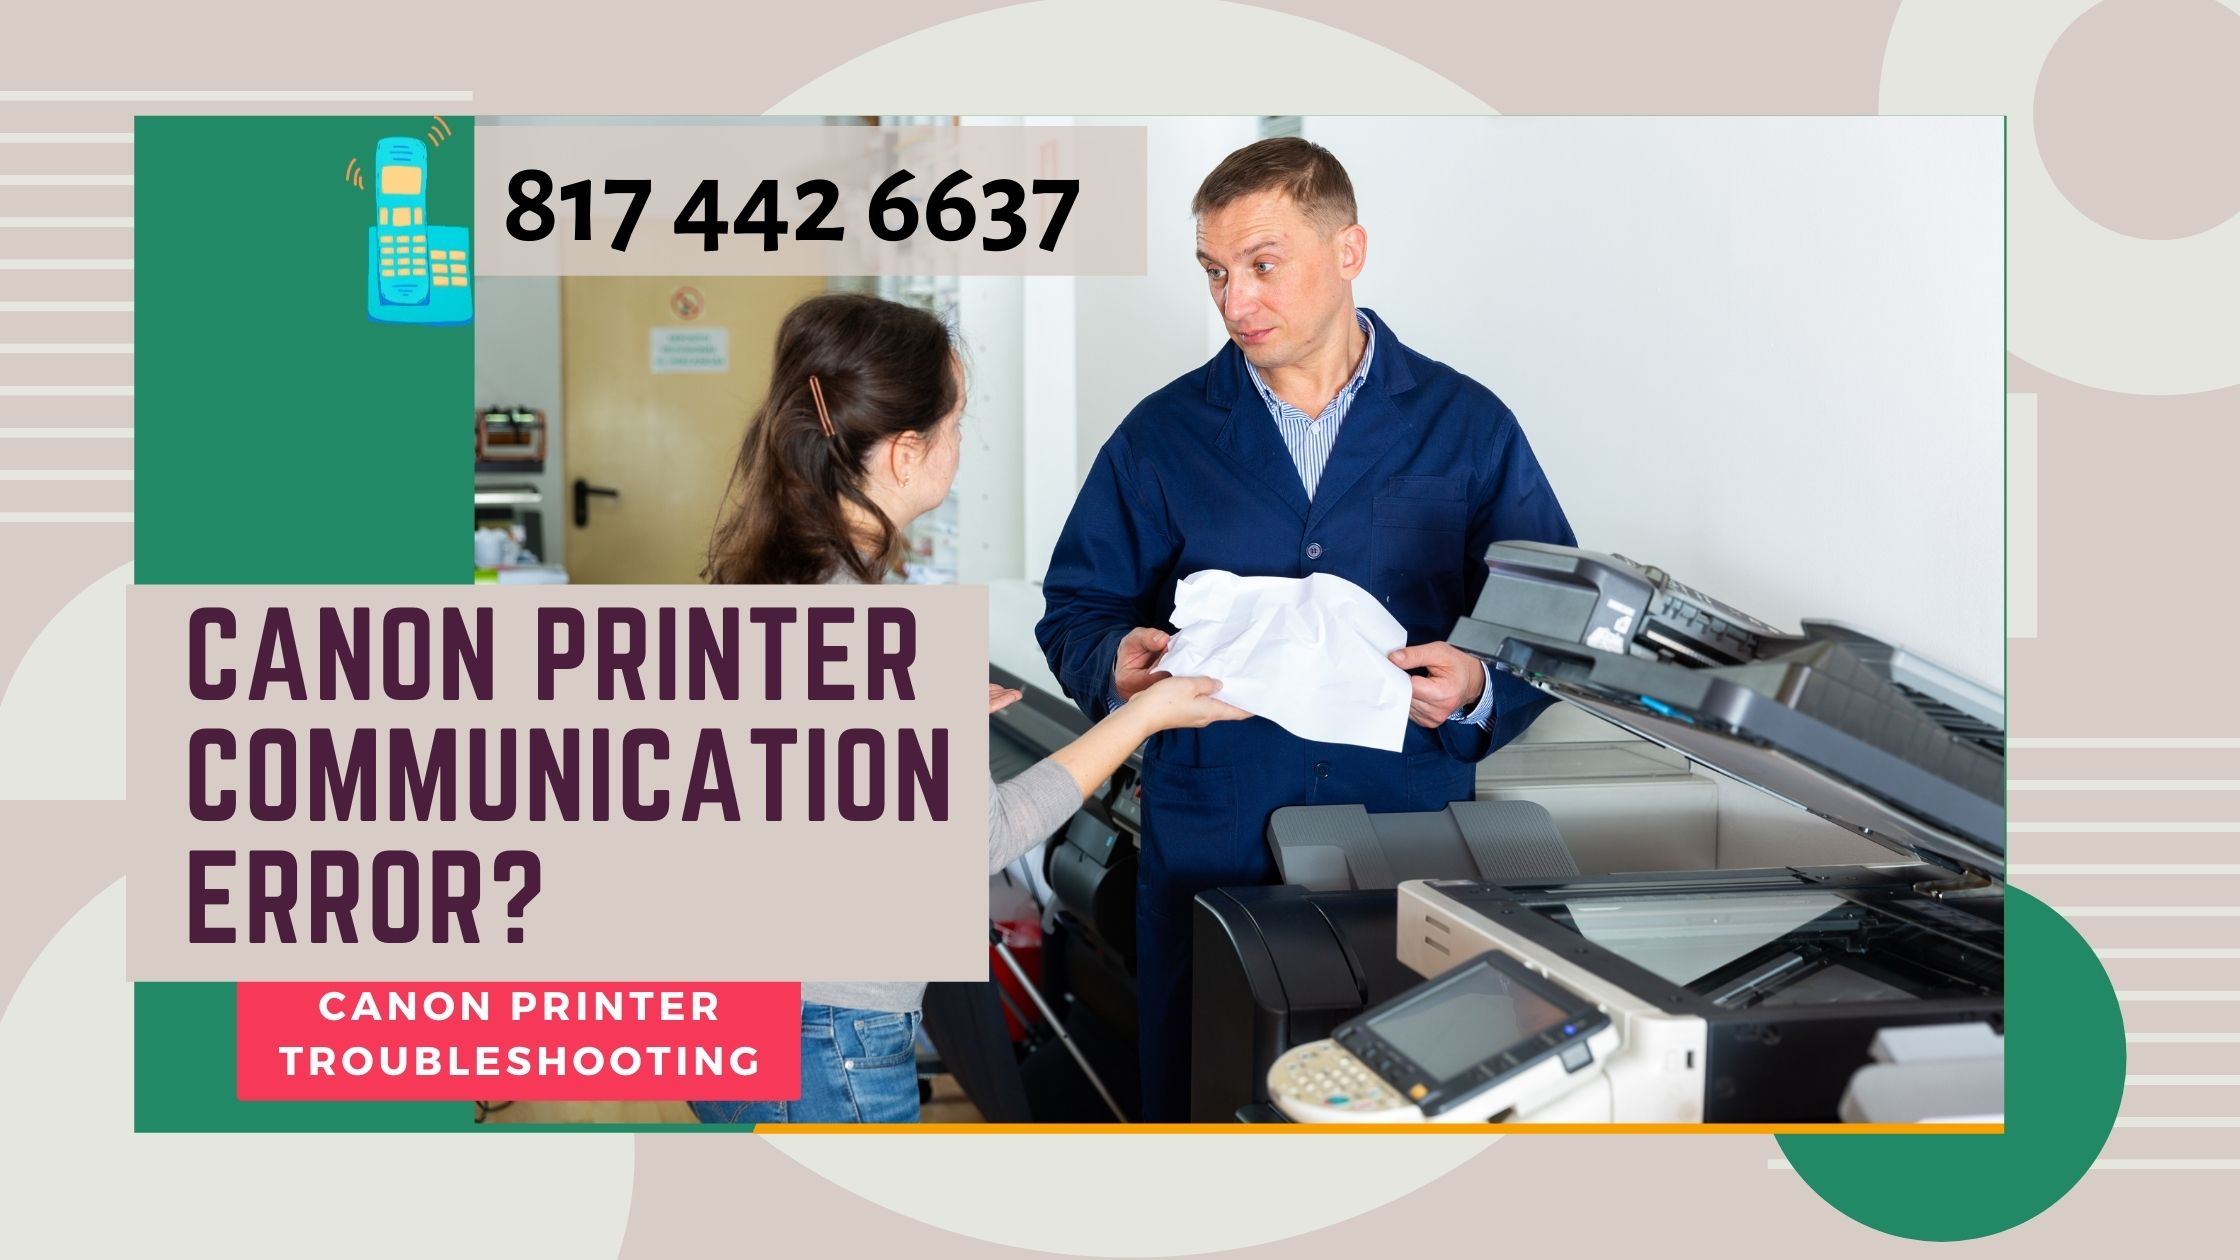 Canon printer communication error_